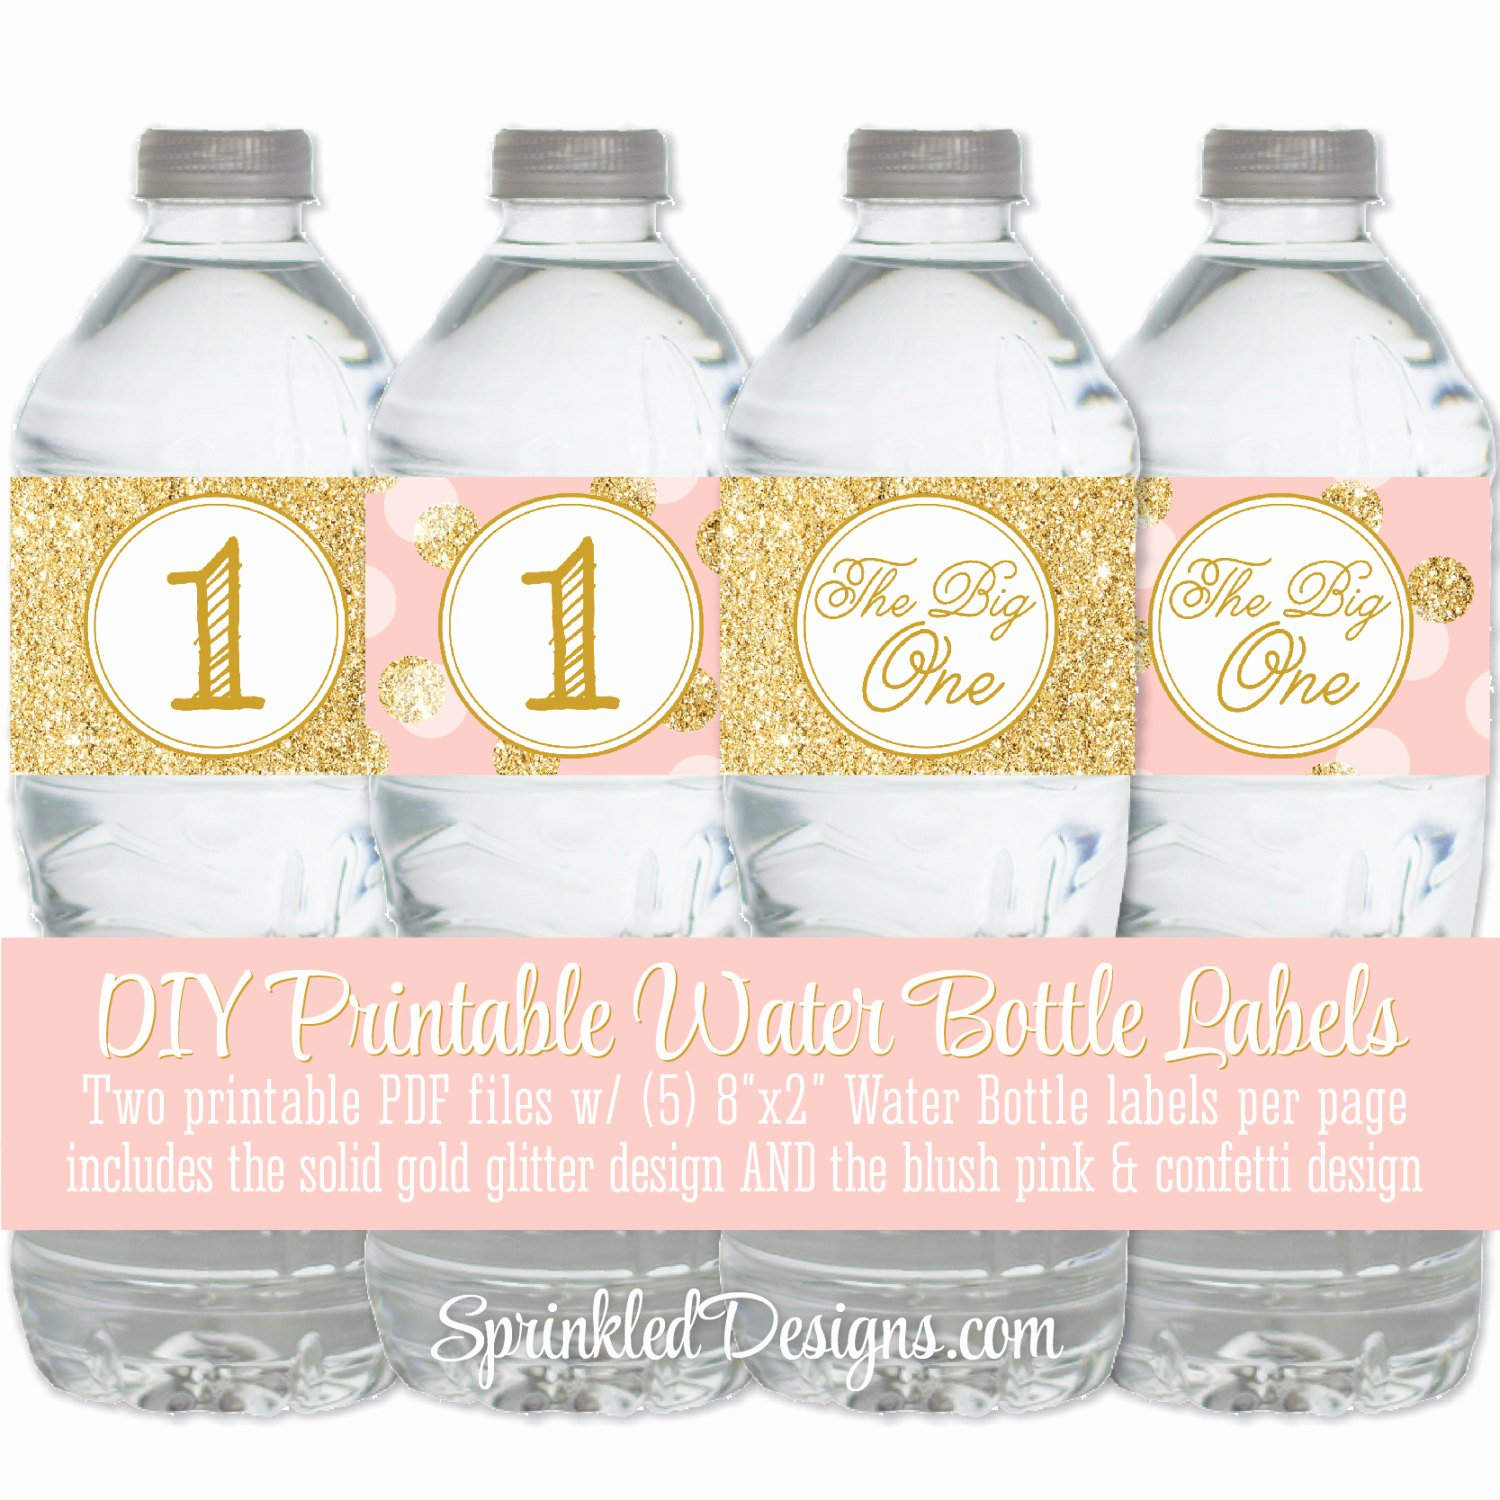 Printable Water Bottle Labels Unique Printable Water Bottle Labels Drink Wraps Wrappers Blush